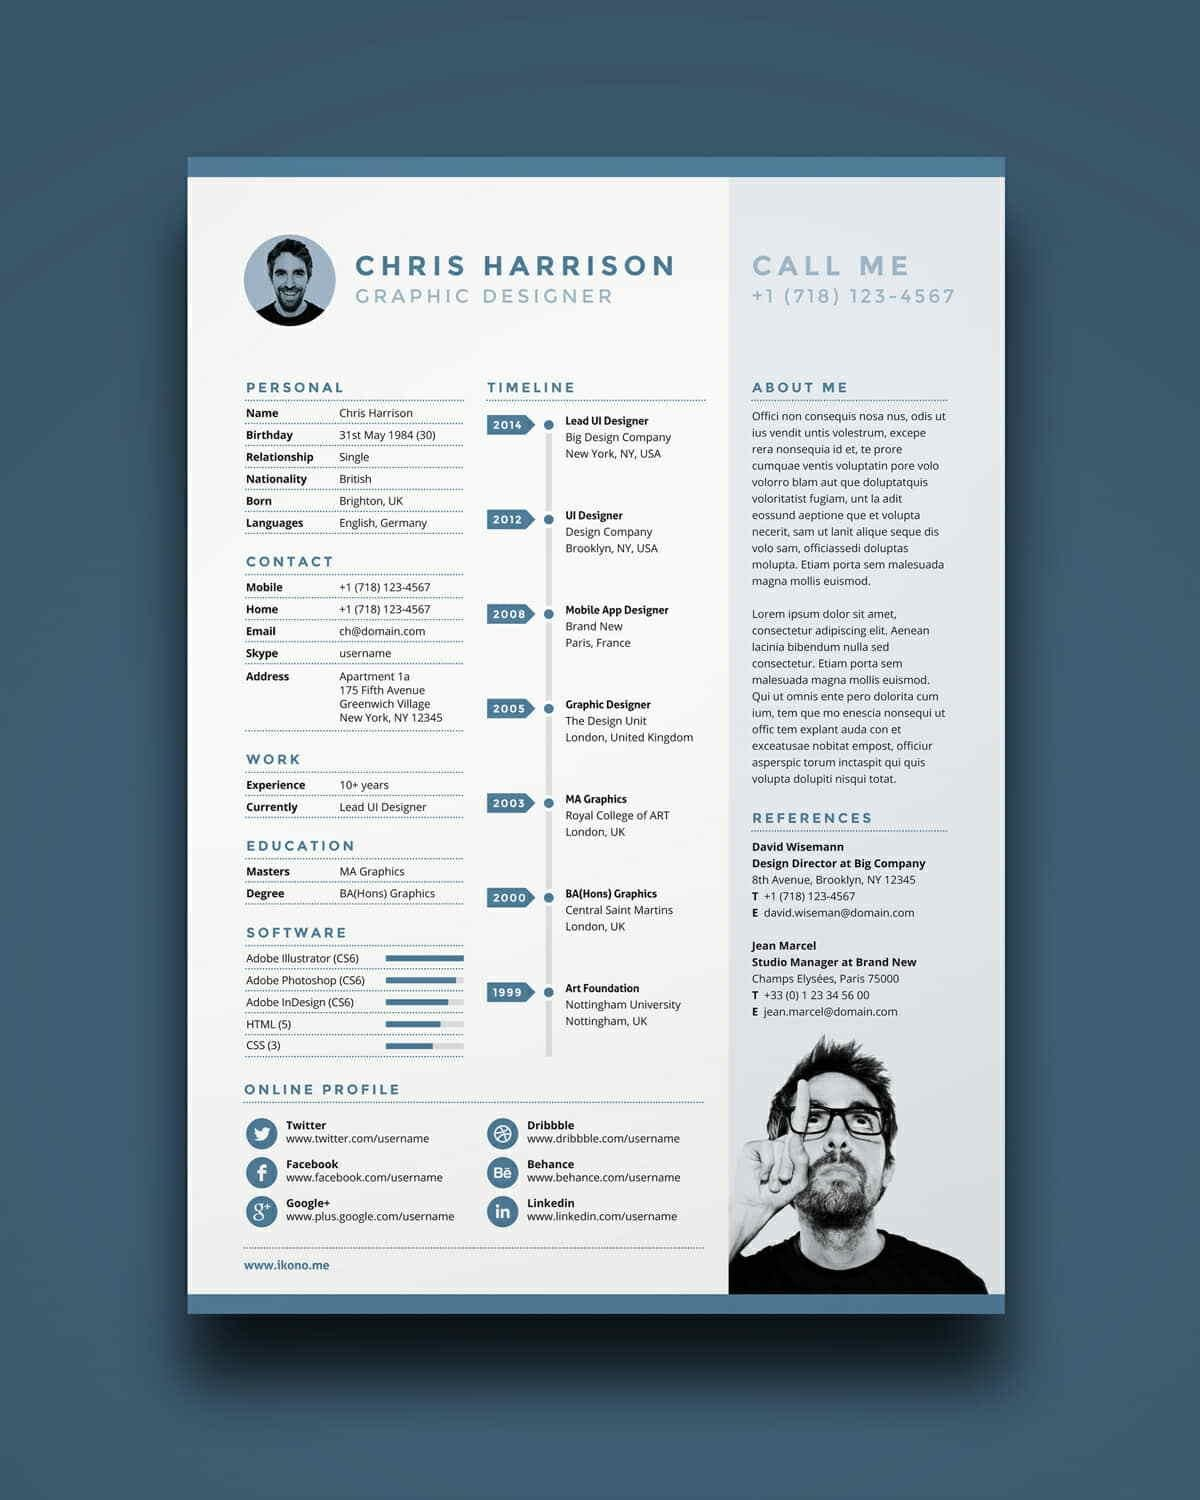 Resumes For Free | Free Resume Templates 17 Downloadable Resume Templates To Use